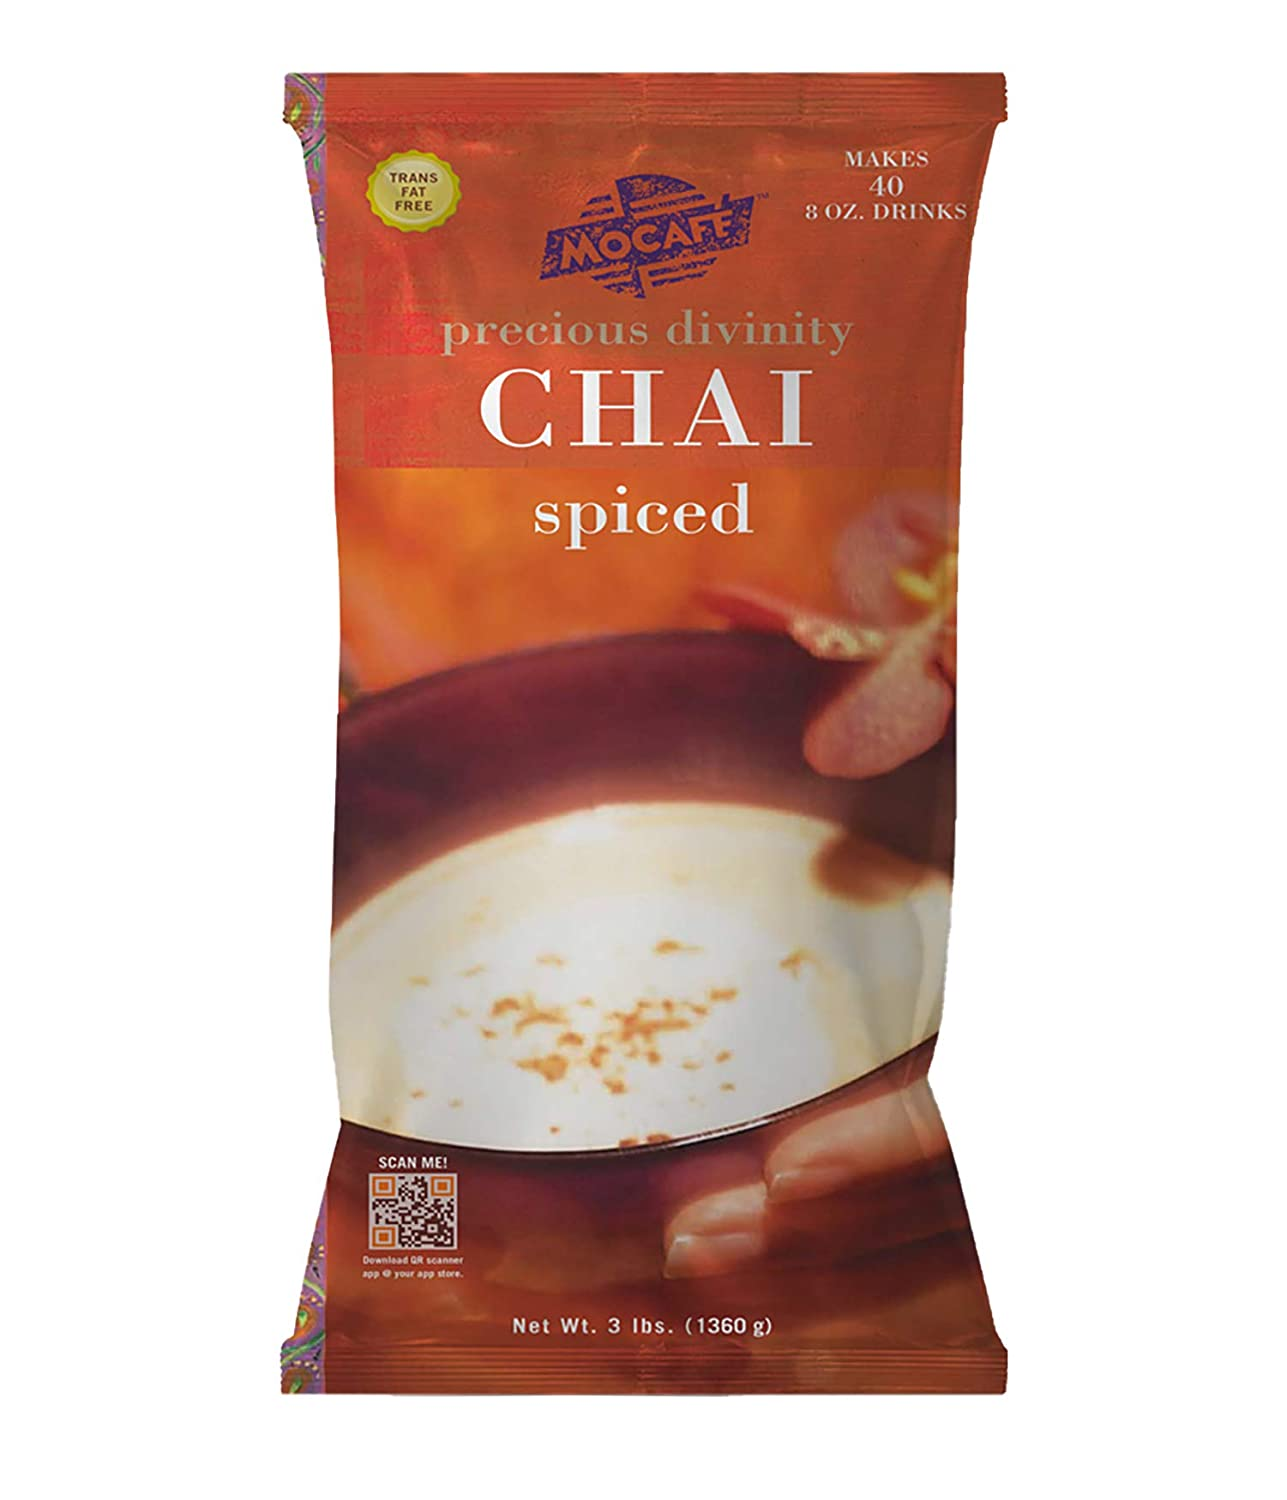 Precious Divinity Spiced Chai Powder From Mocafé